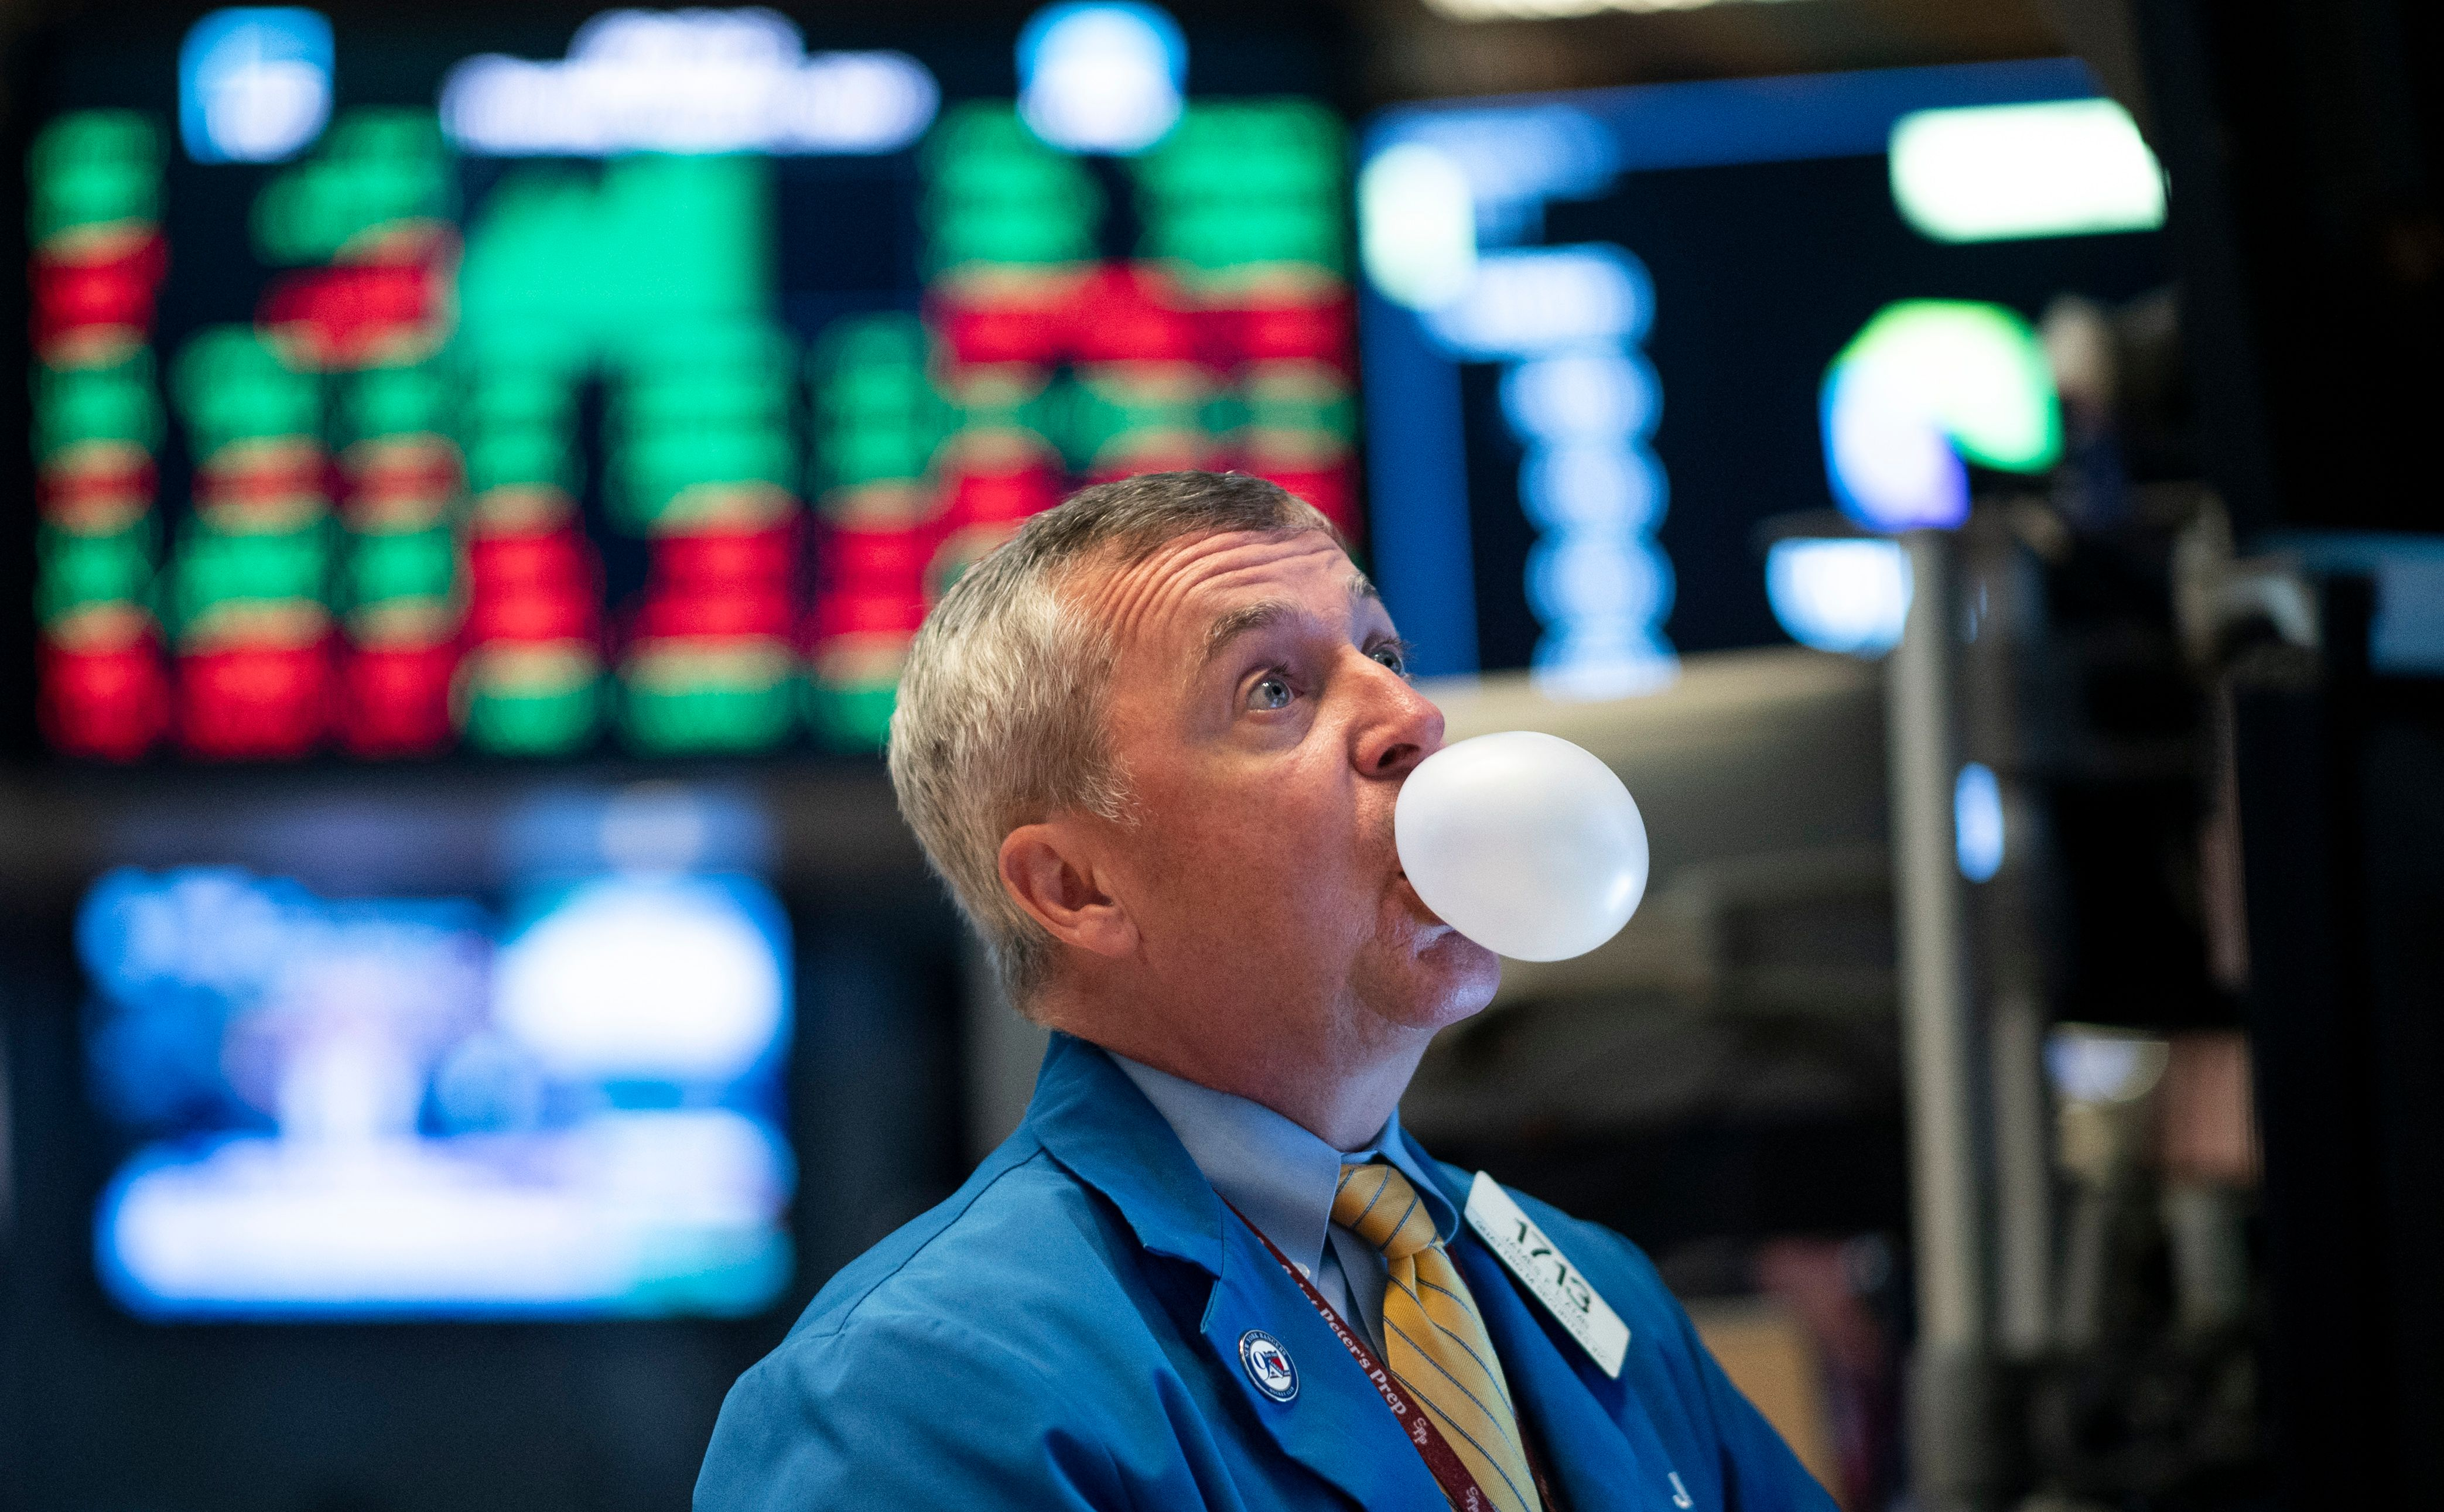 A stock trader blowing bubble gum on the trading floor.